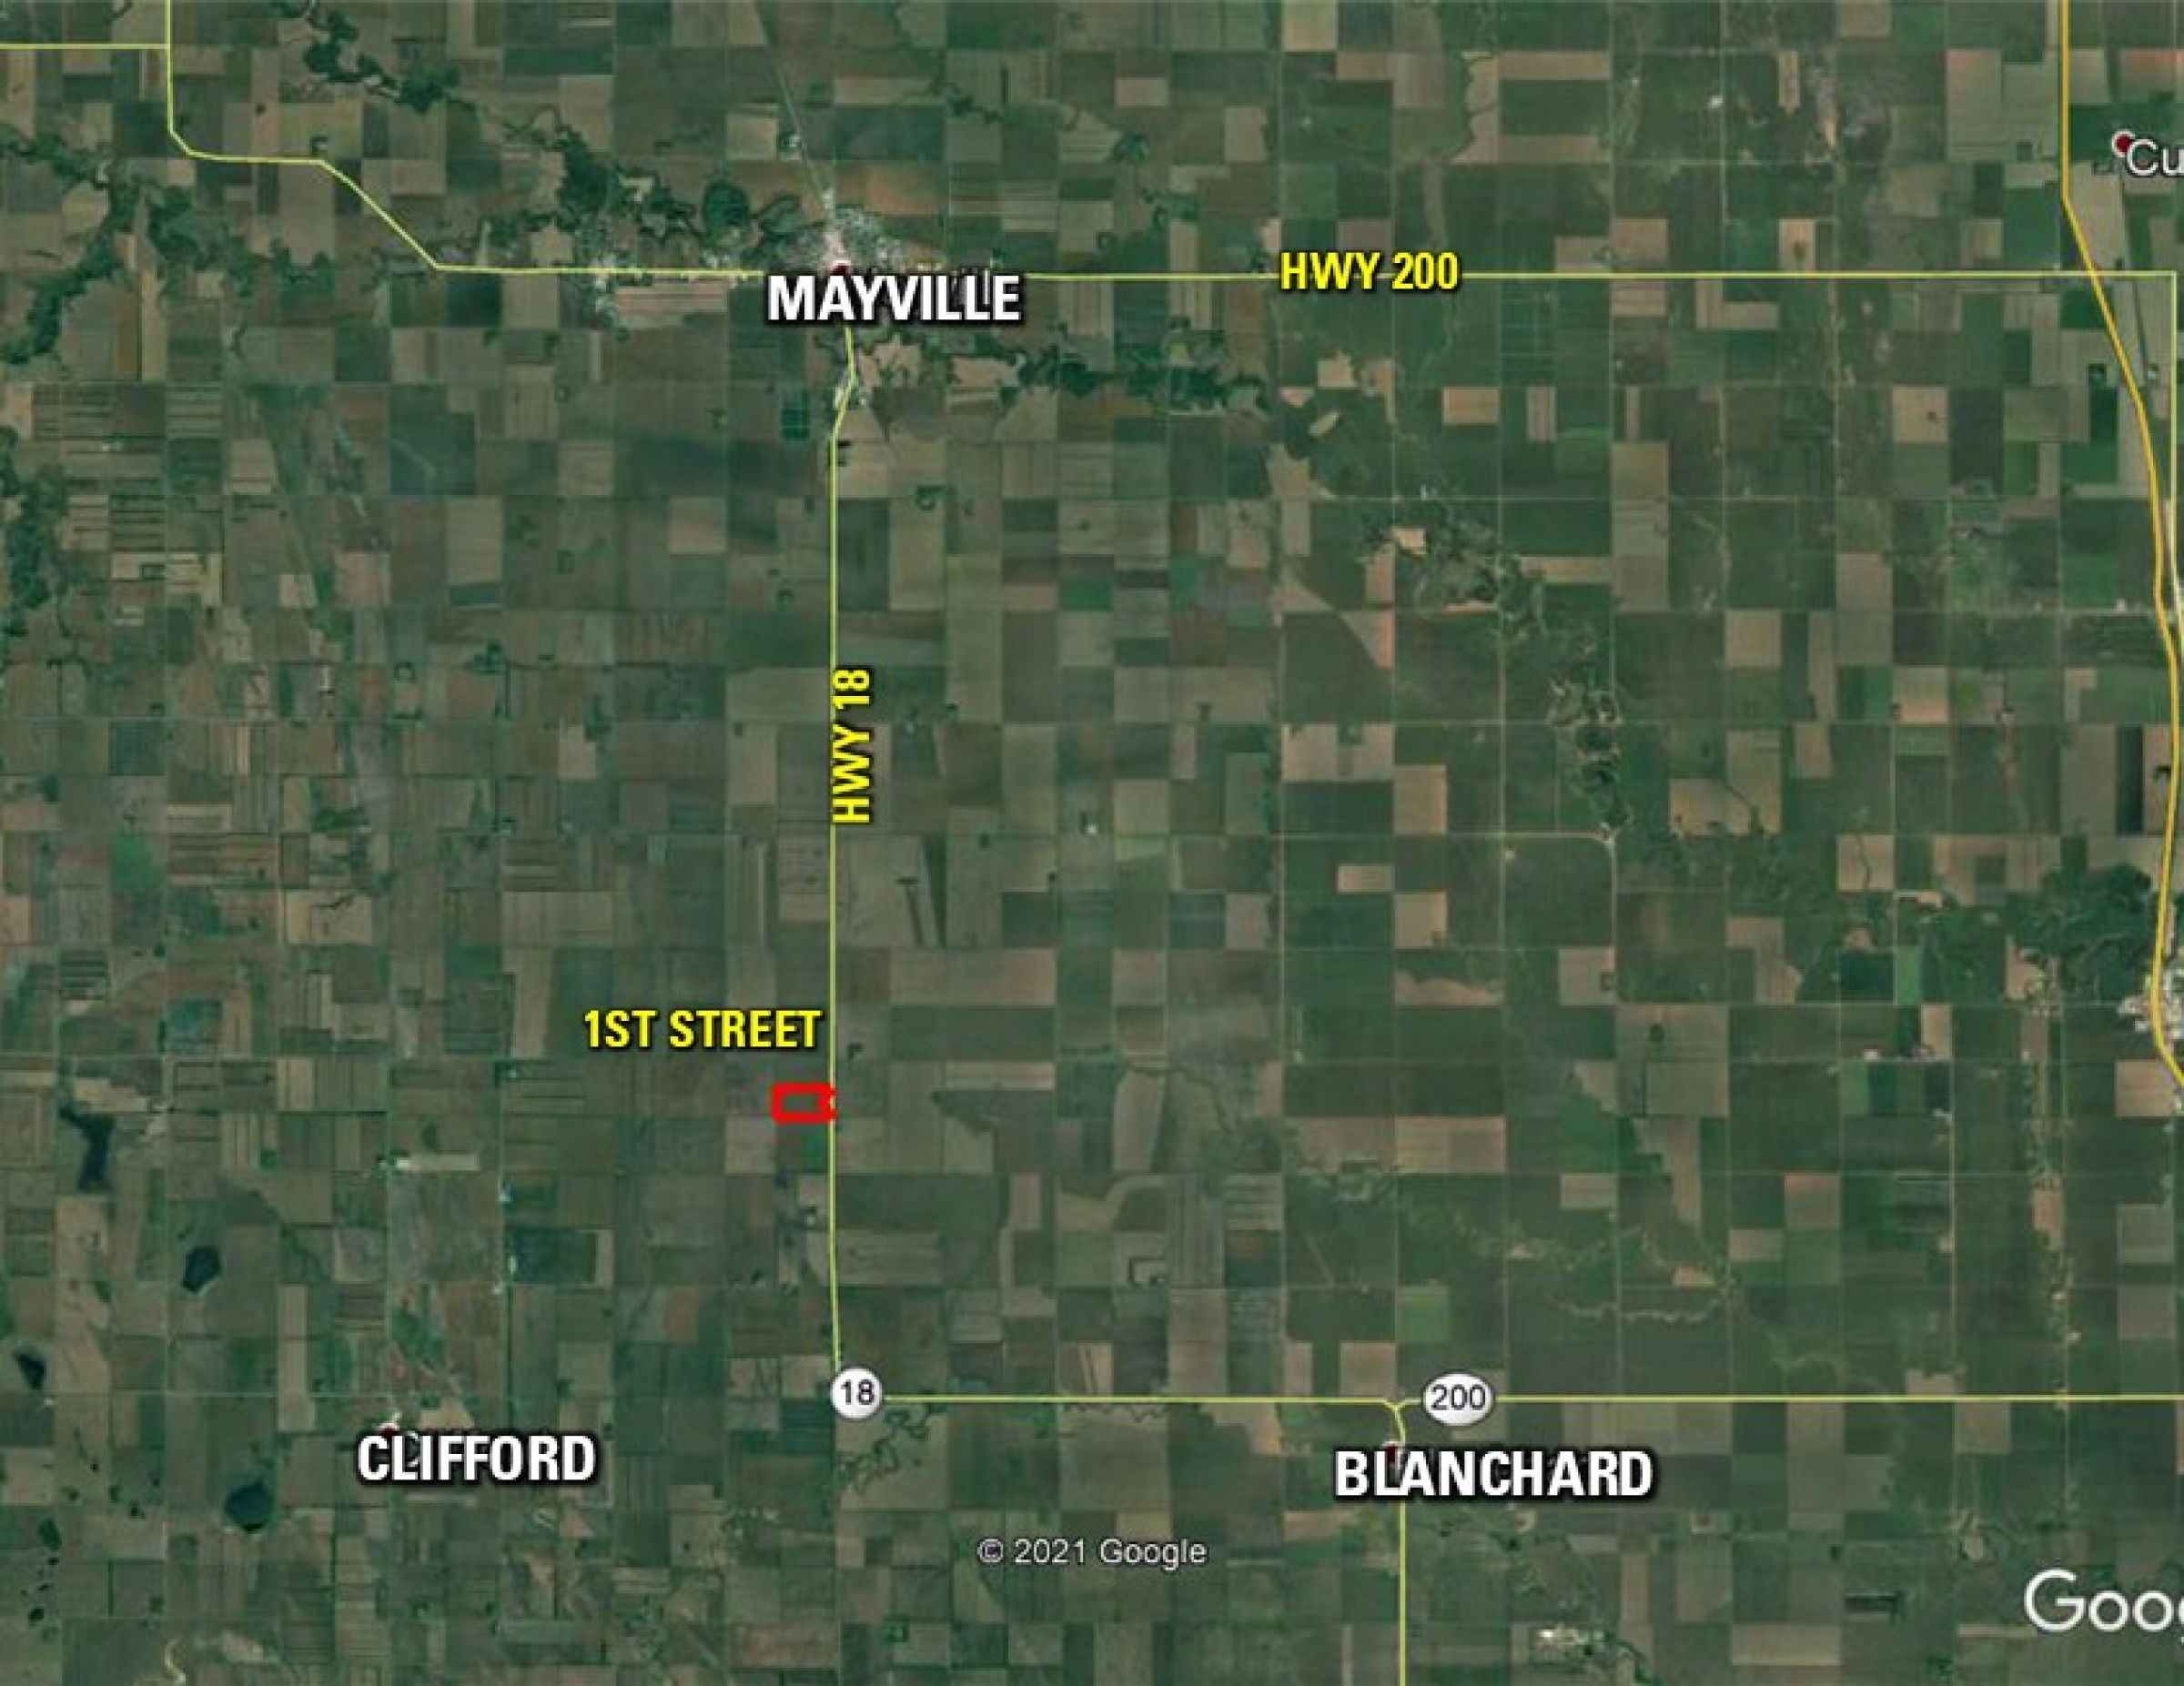 auctions-traill-county-north-dakota-74-acres-listing-number-15607-1-2021-06-22-202248.jpg